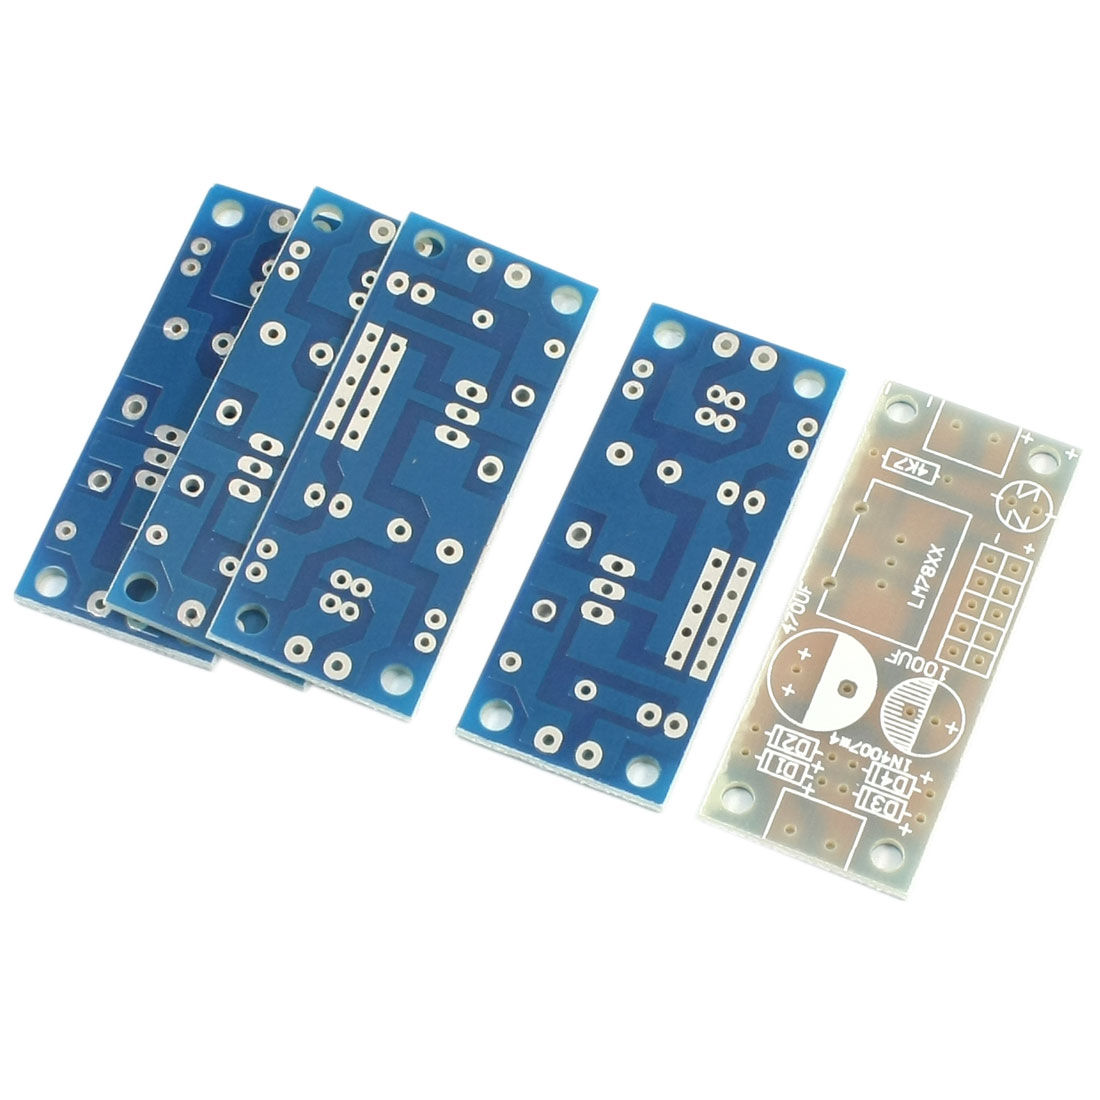 5Pcs L7805 L7824 L7812 3-Terminal Single Side Voltage Regulator Stabilization PCB Board for 78xx Series IC